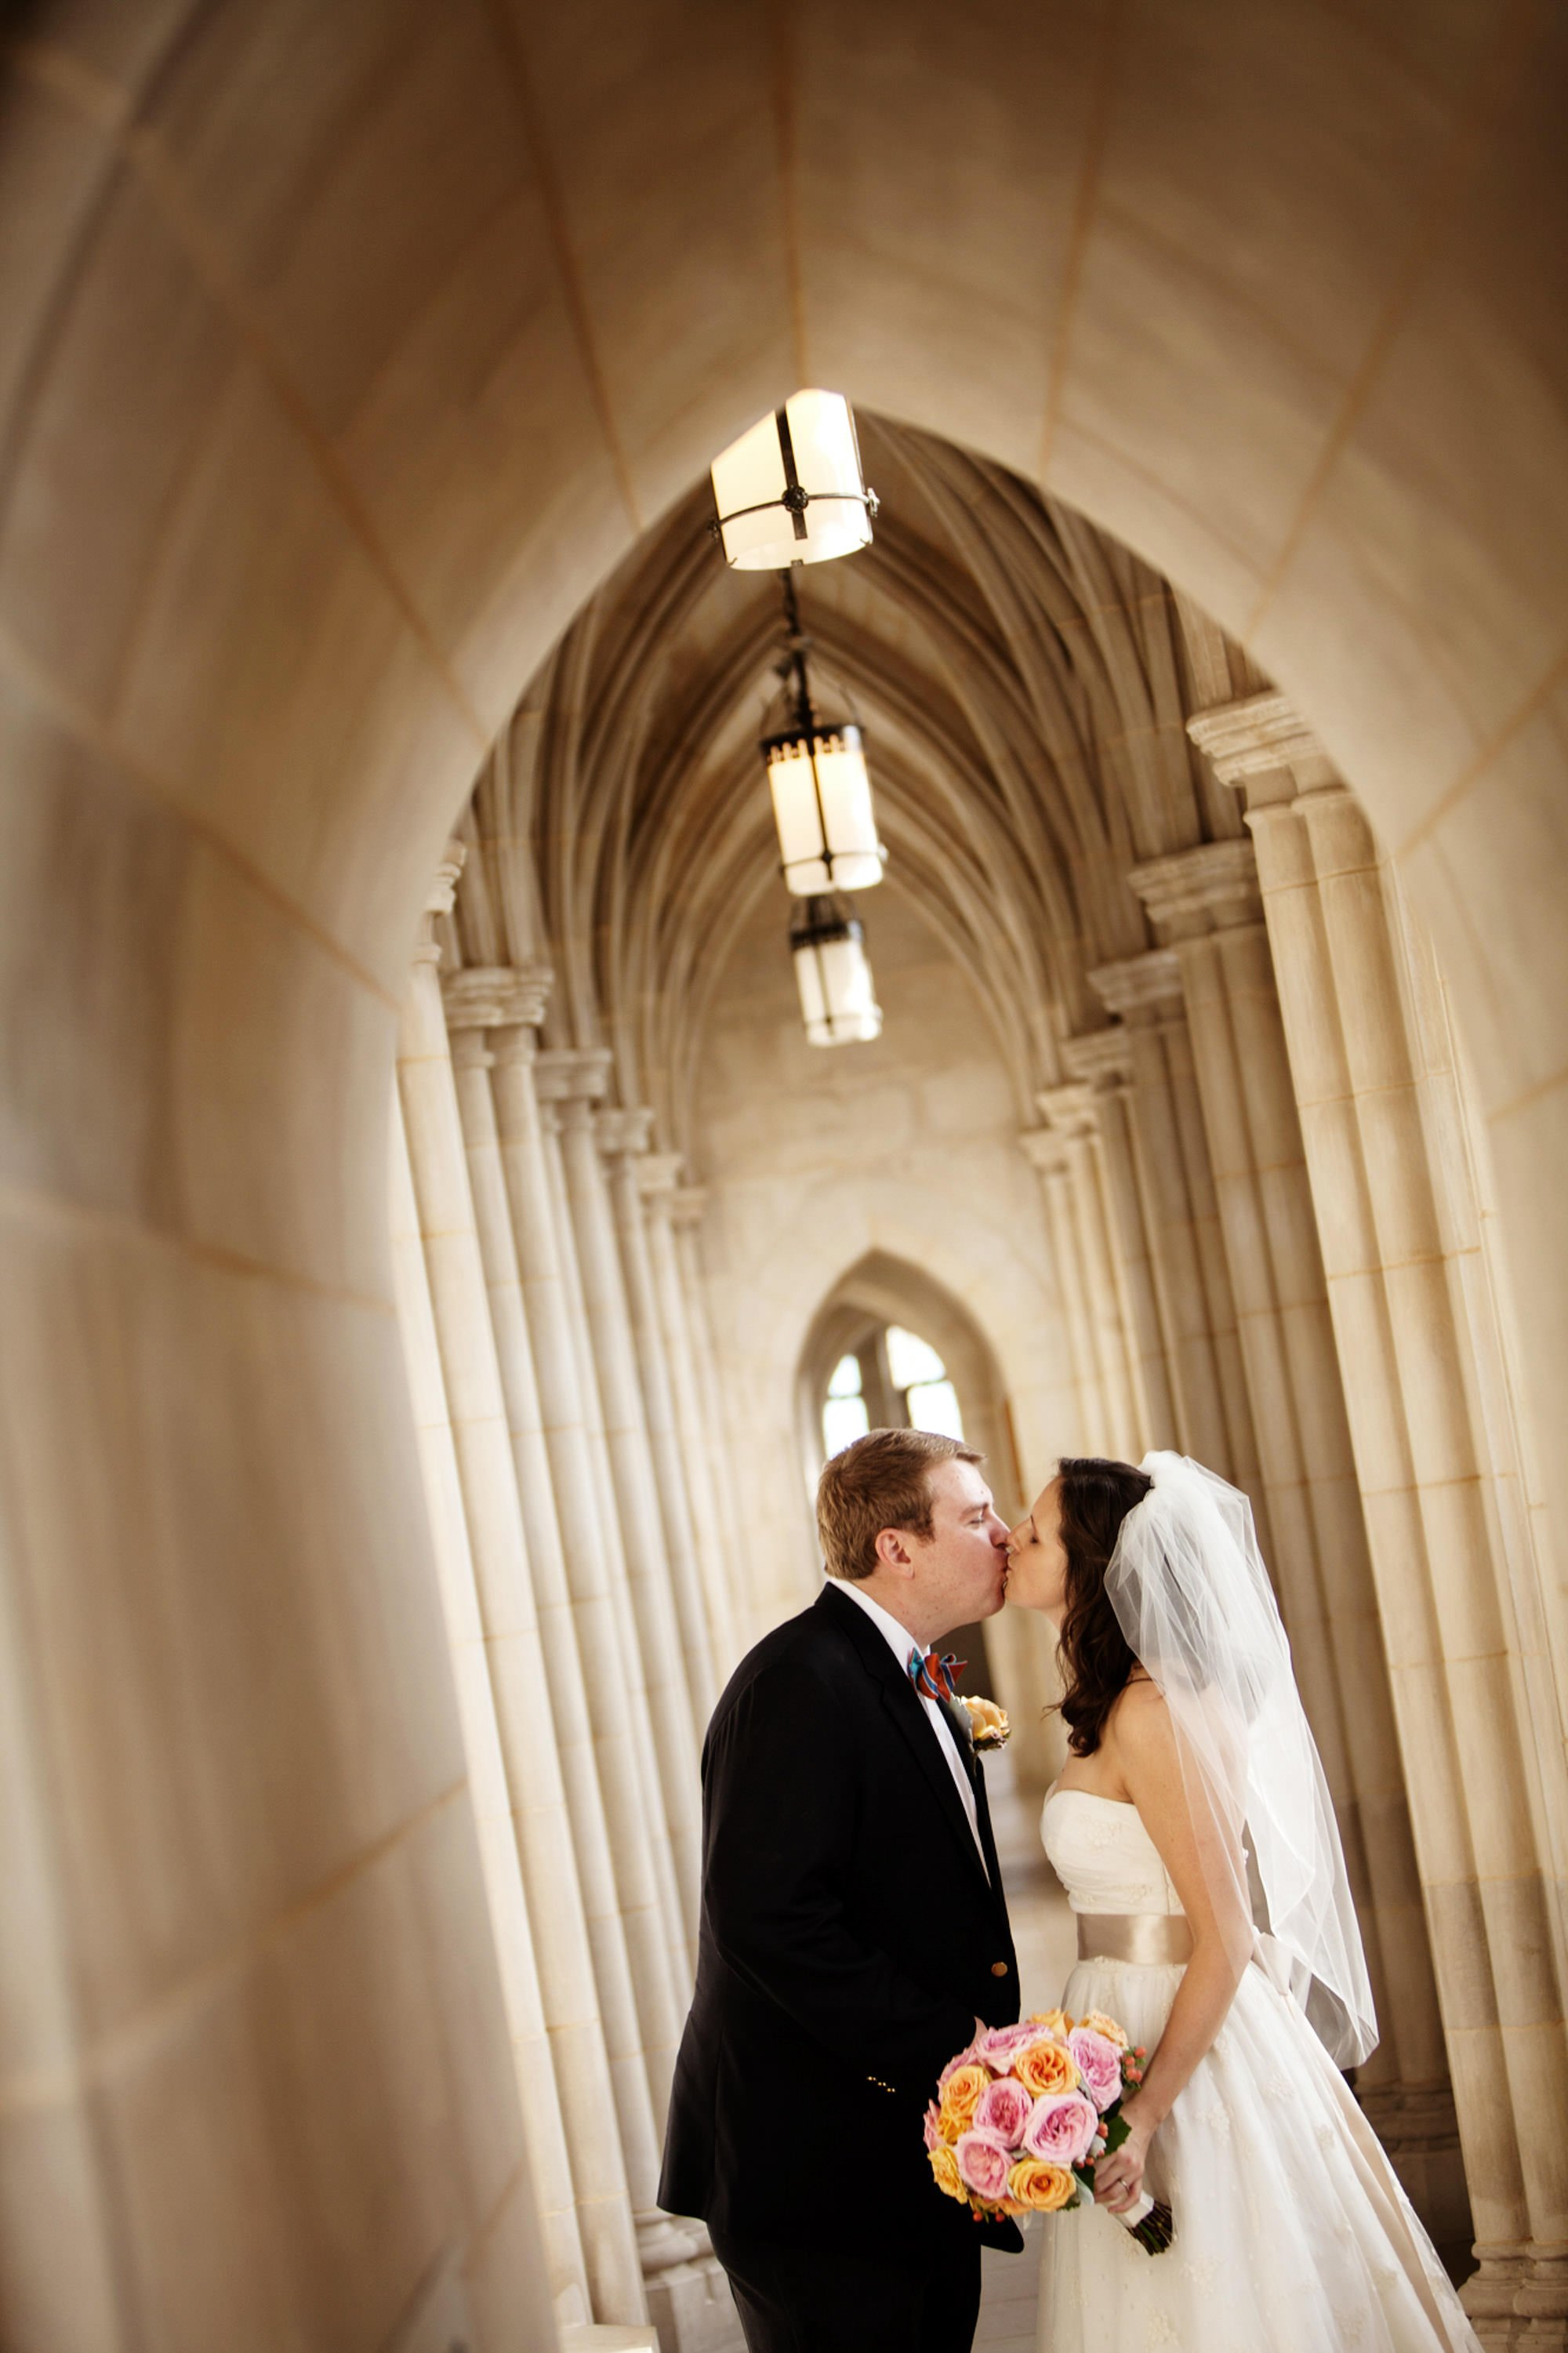 The bride and groom kiss on the Observation Deck on their Washington National Cathedral wedding day.